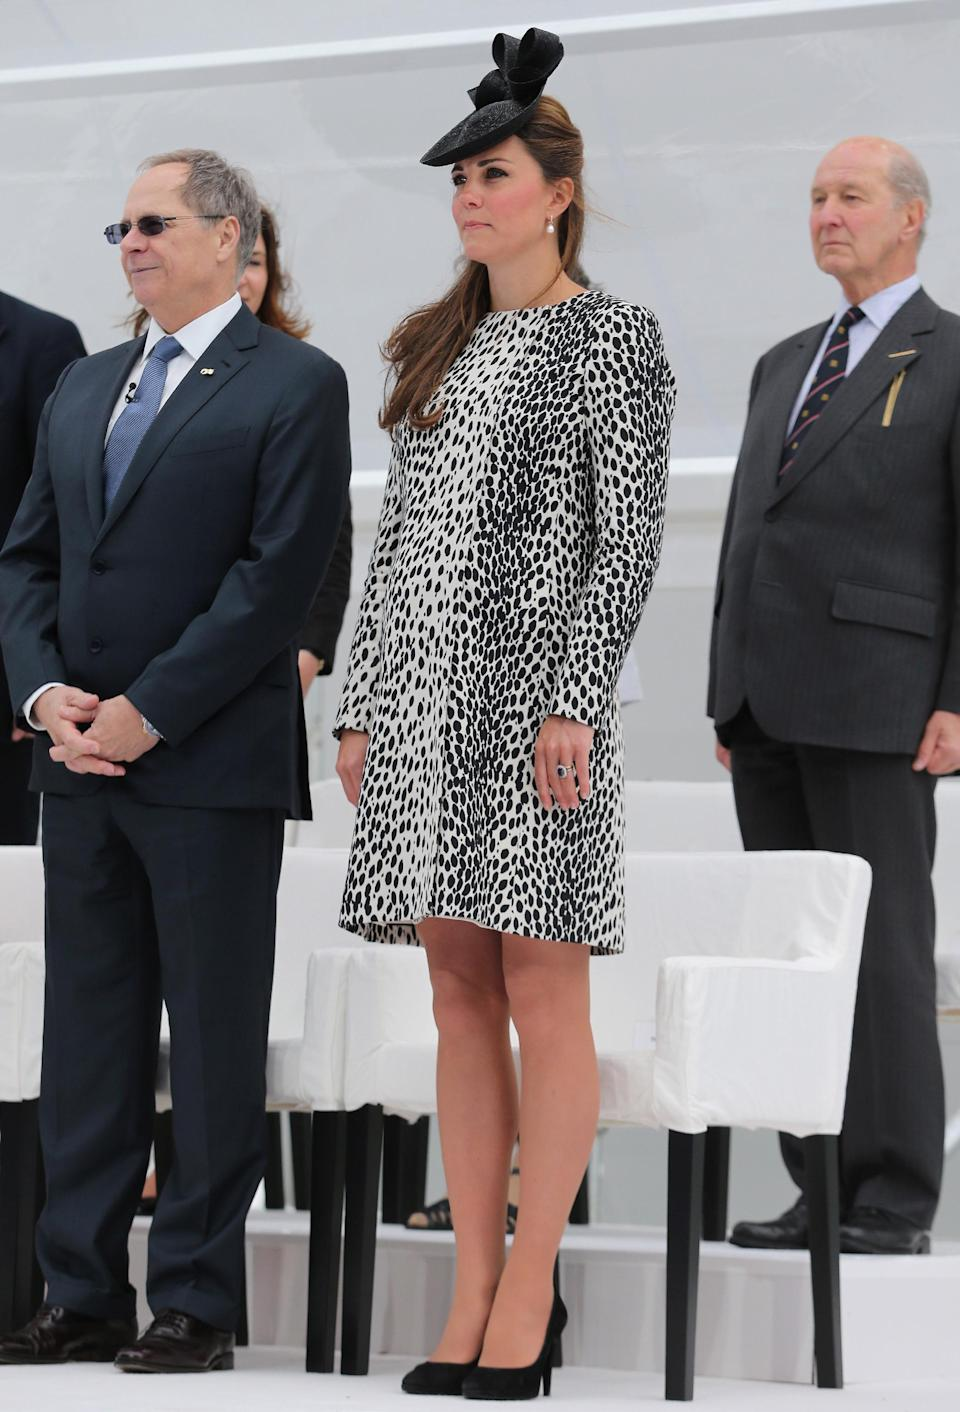 Britain's Duchess of Cambridge attends a Princess Cruises ship naming ceremony to officially name the new Royal Princess cruise liner at a gala ceremony, in Southampton, England, Thursday June 13, 2013. It is expected to be her final planned solo event before the birth. (AP Photo/Chris Jackson, Pool)